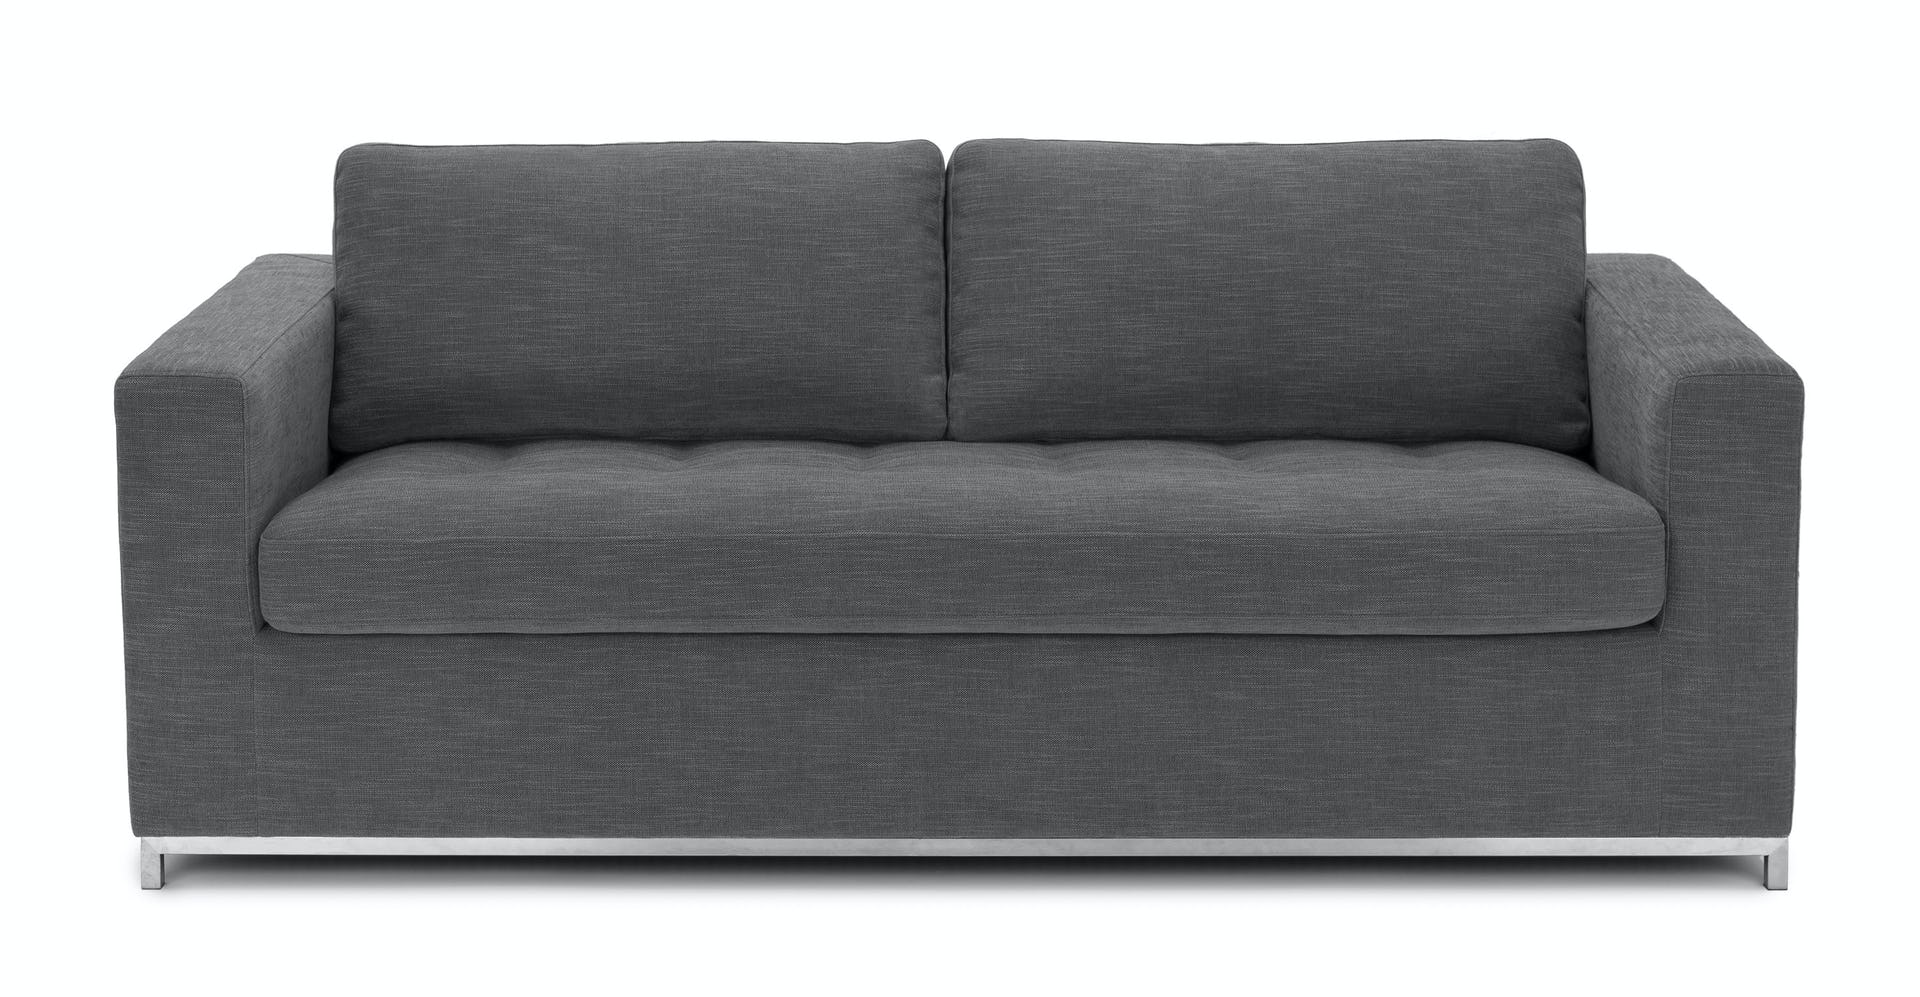 Fine Soma Twilight Gray Sofa Bed Alphanode Cool Chair Designs And Ideas Alphanodeonline